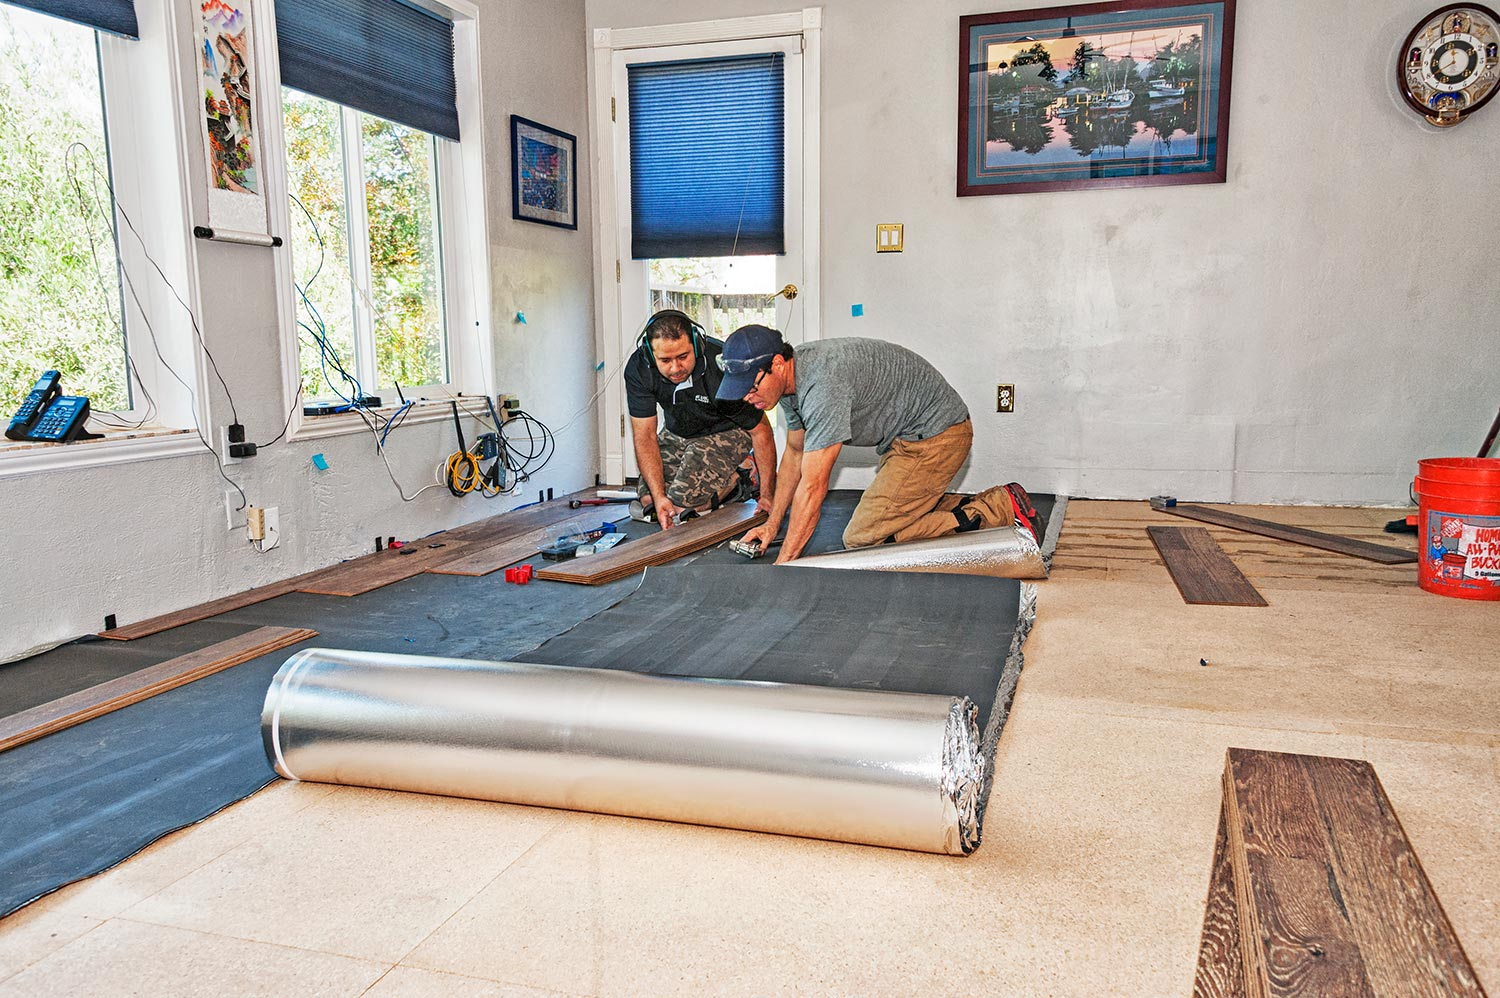 Placing new flooring in a newly renovated home